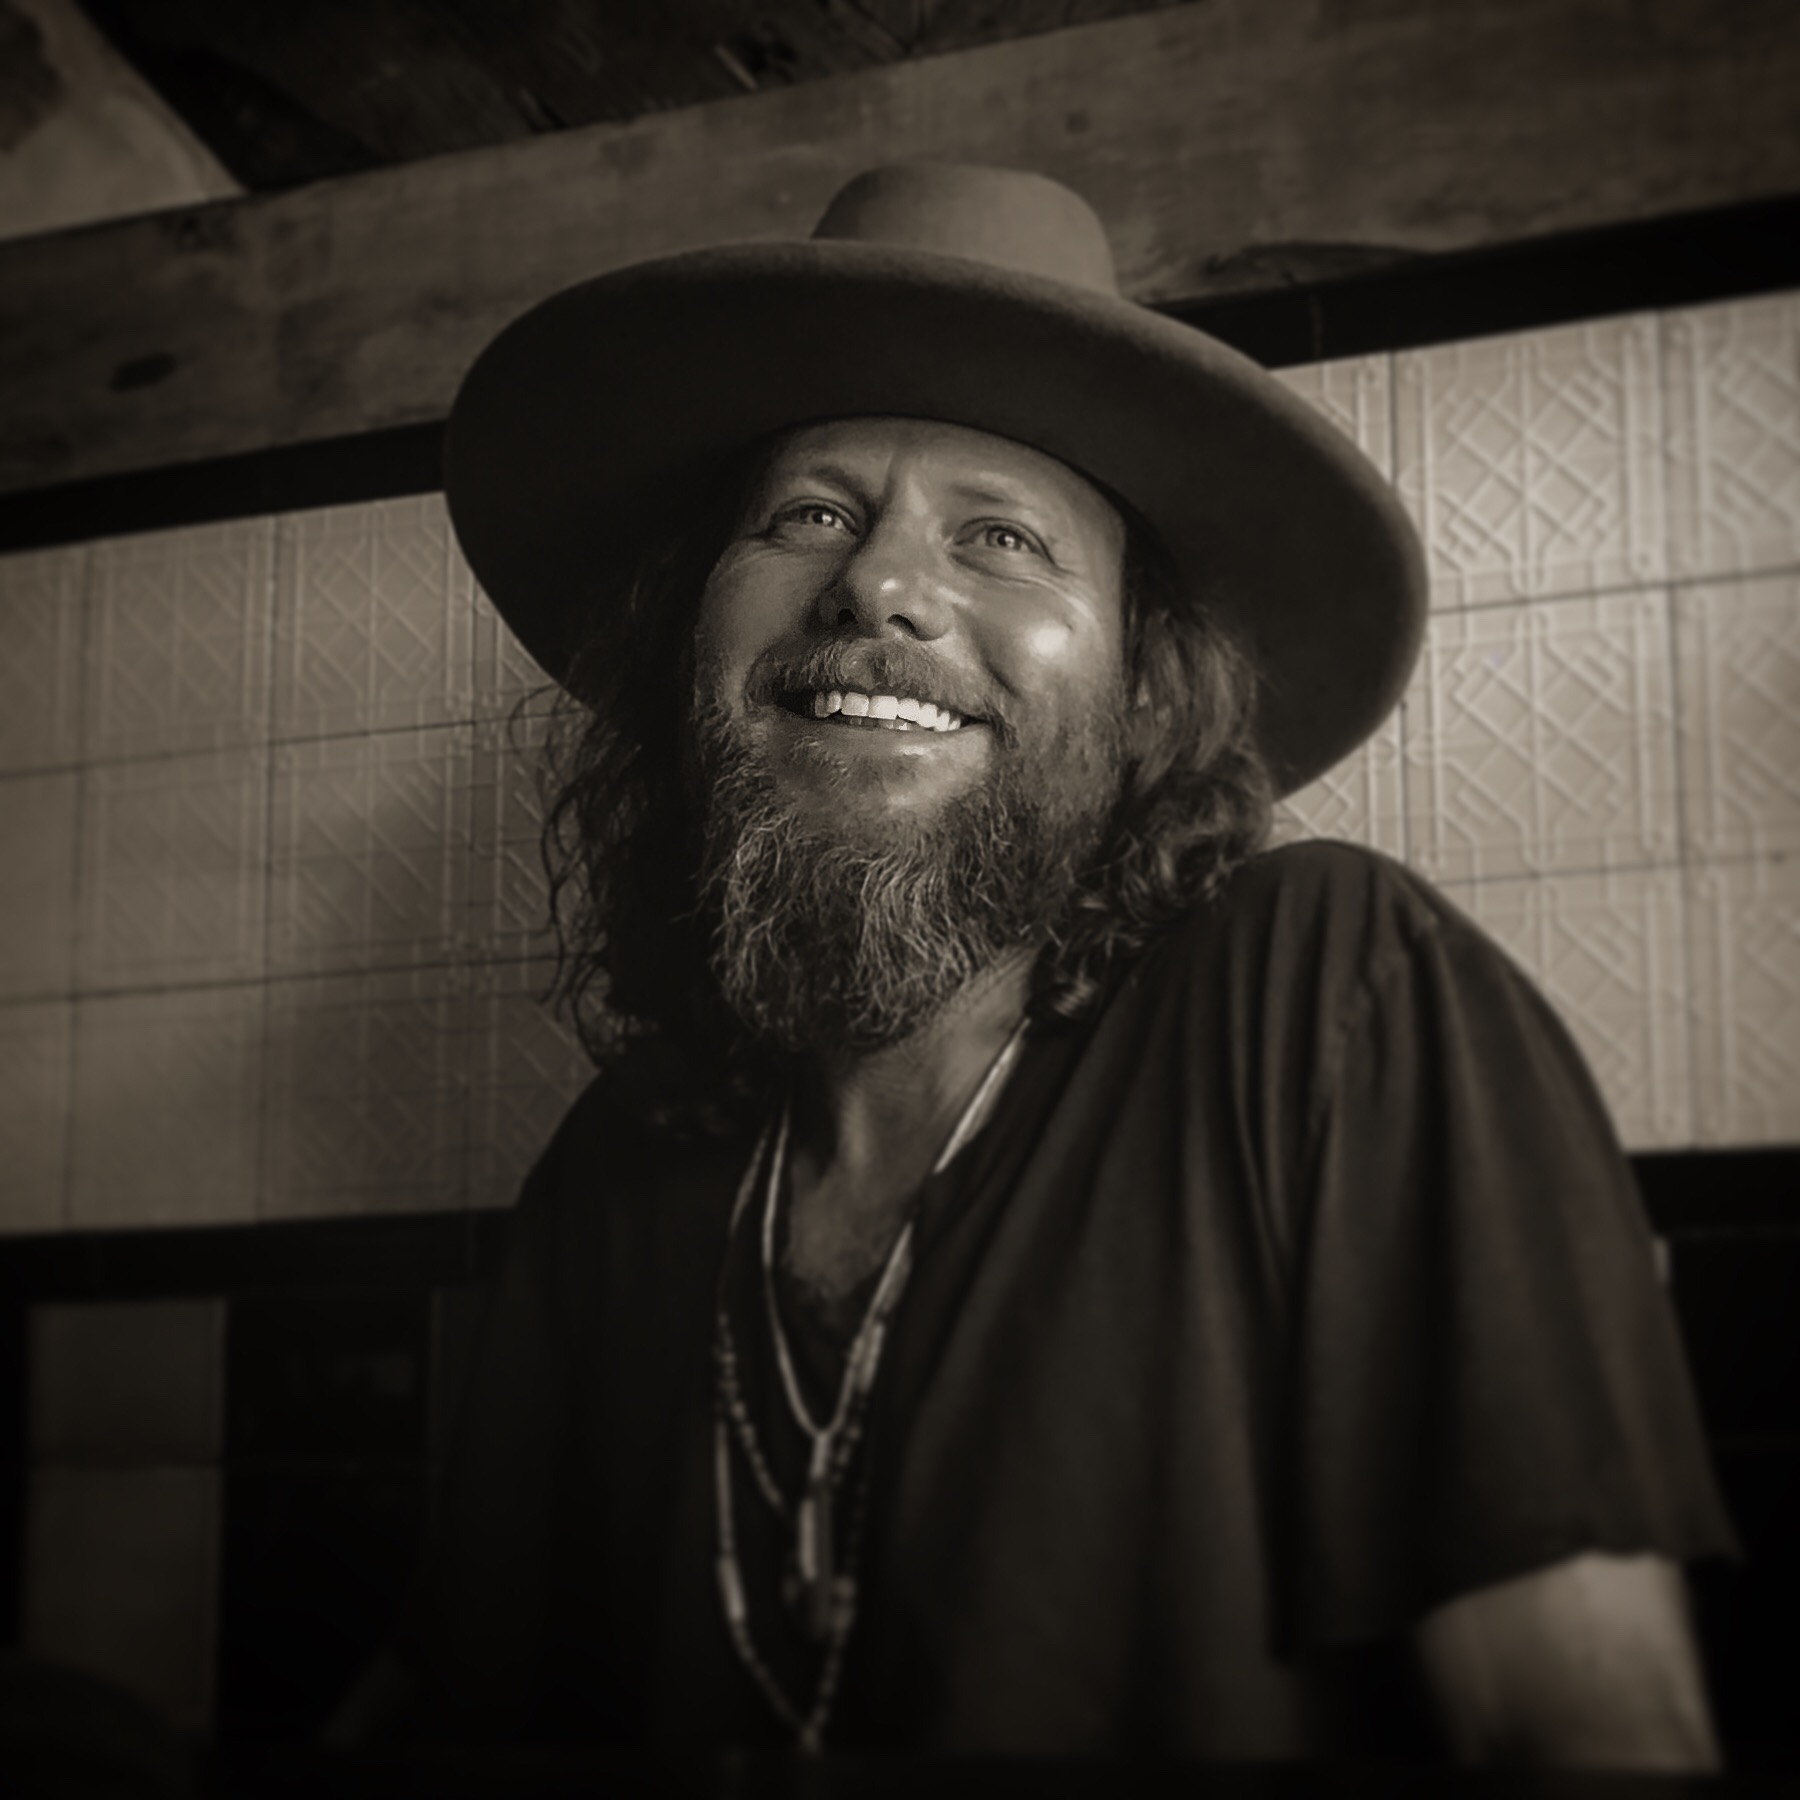 CHRIS ROBERTS - As owner and chief hatter, Chris opened the flagship store in Aspen, Colorado in 2015. He opened the second location in Austin, Texas in 2017.